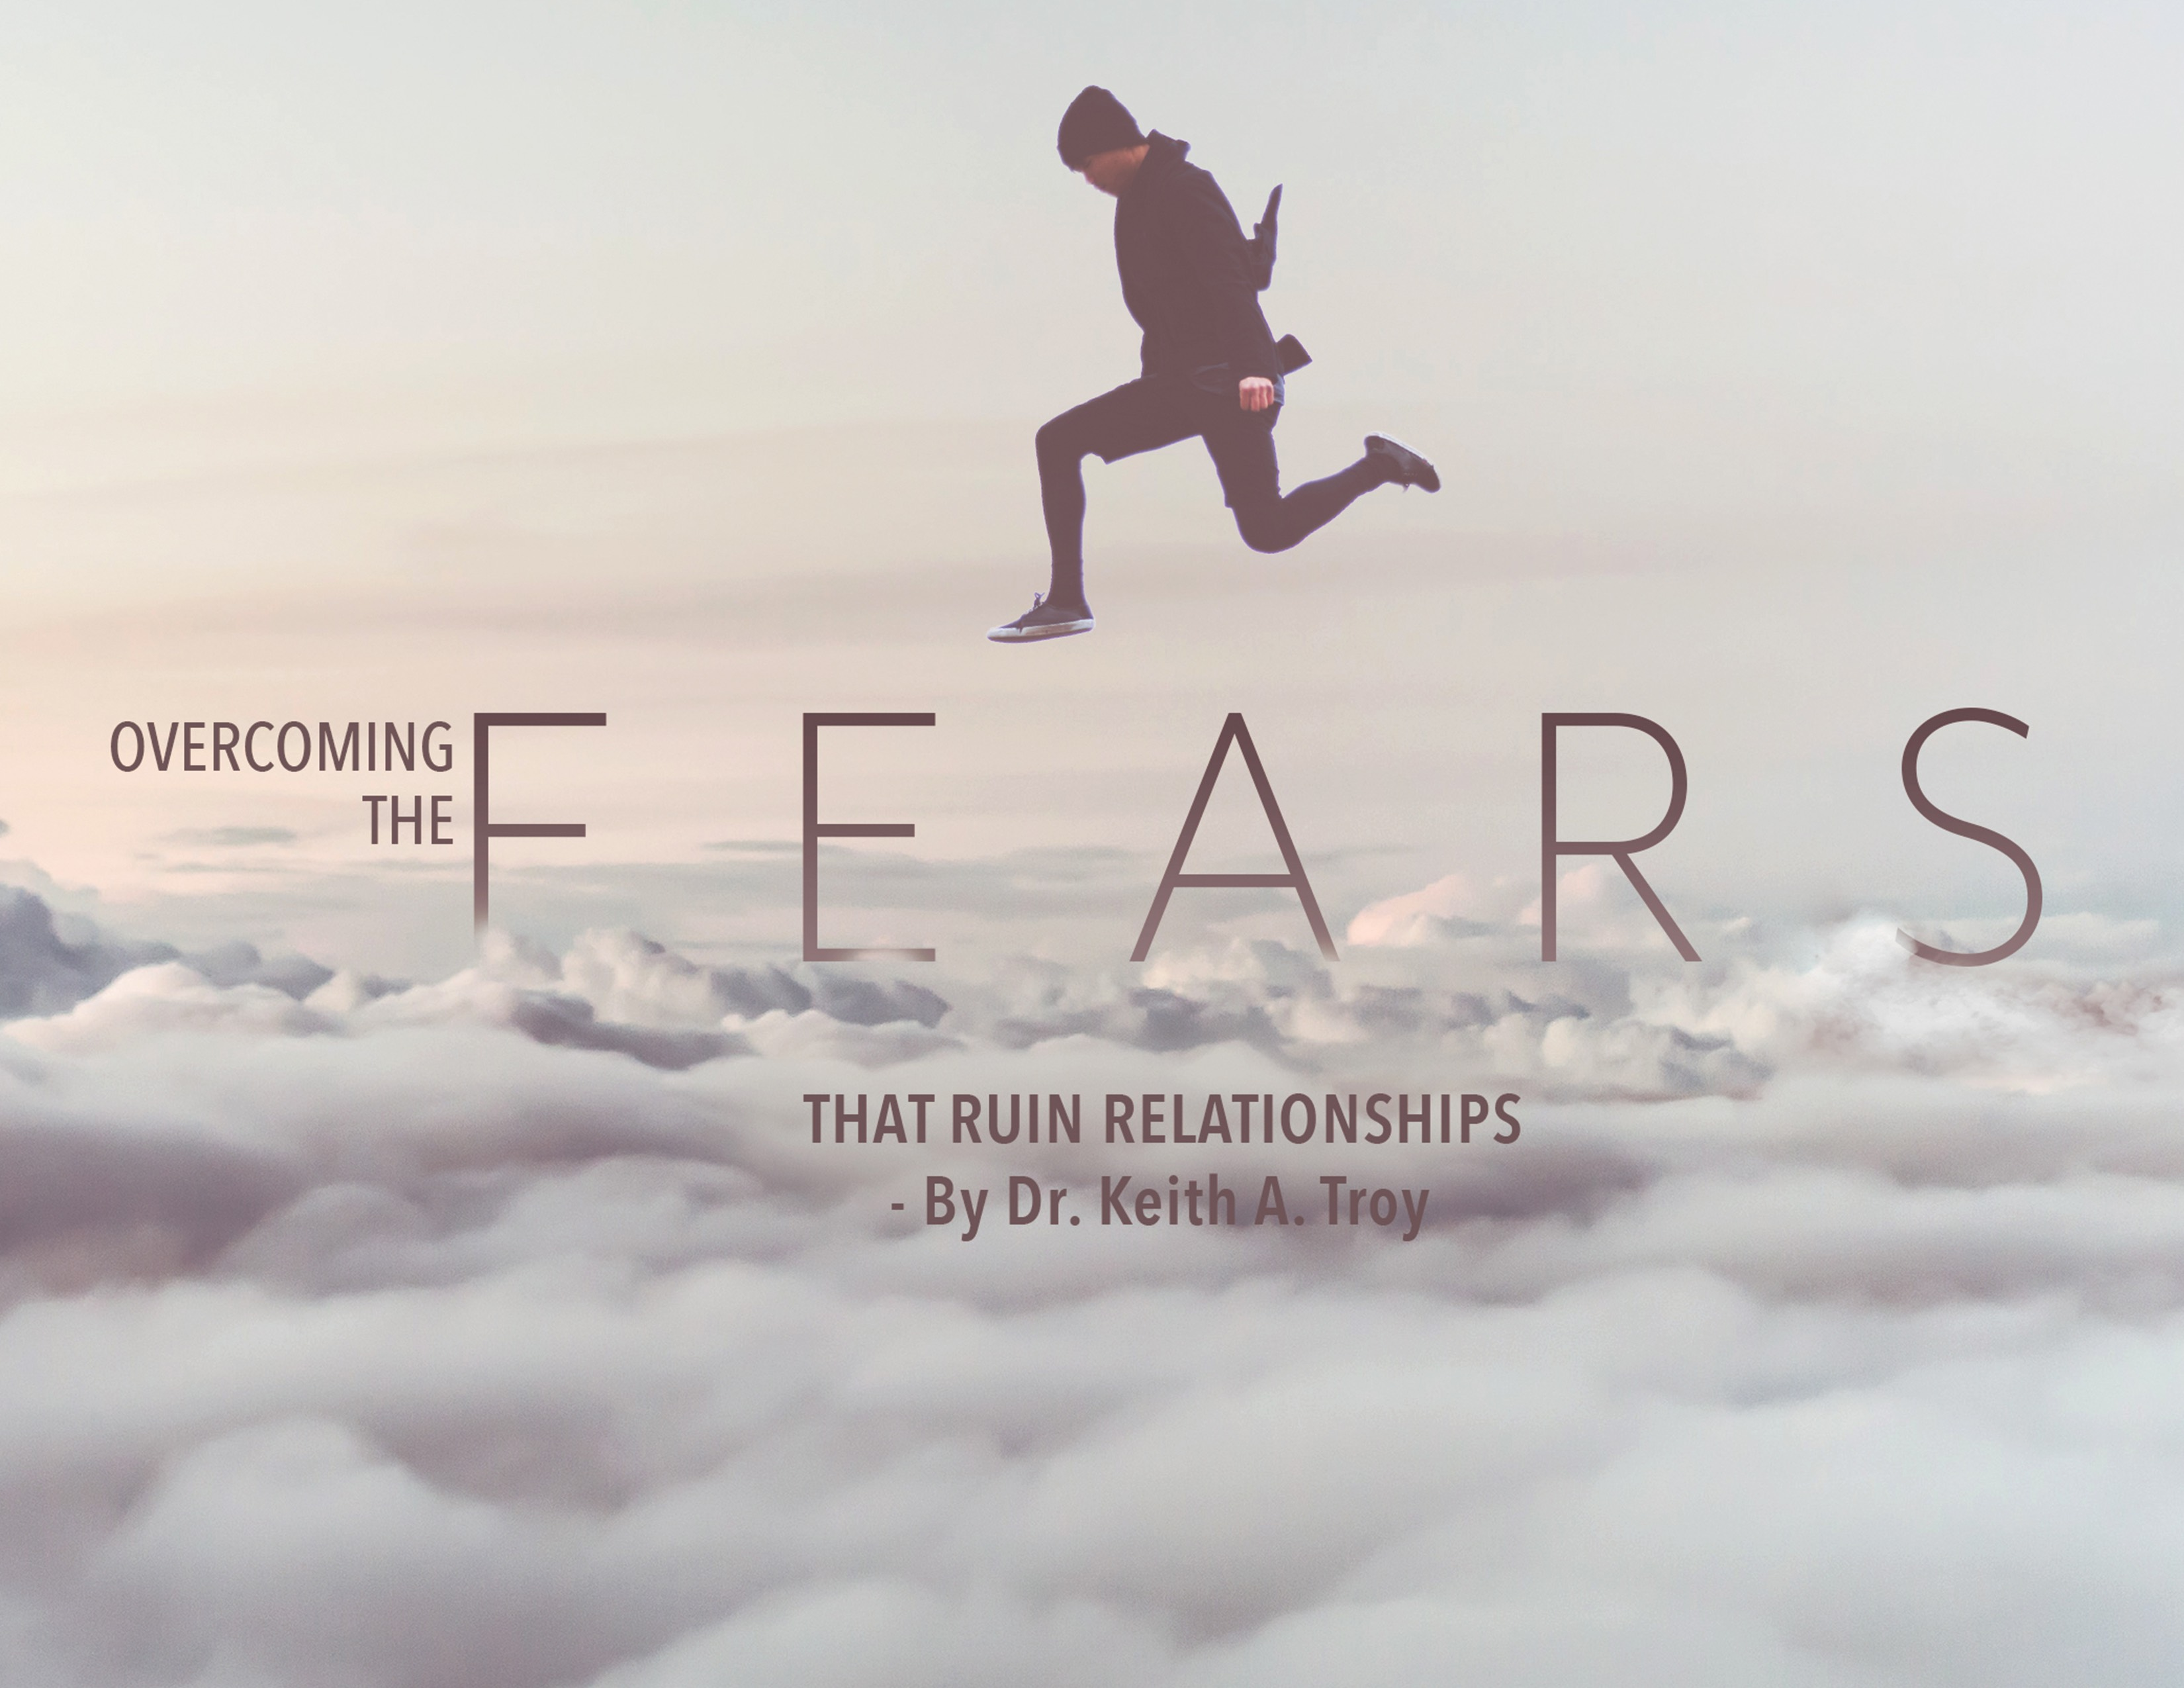 Overcoming the Fears that Ruin Relationships